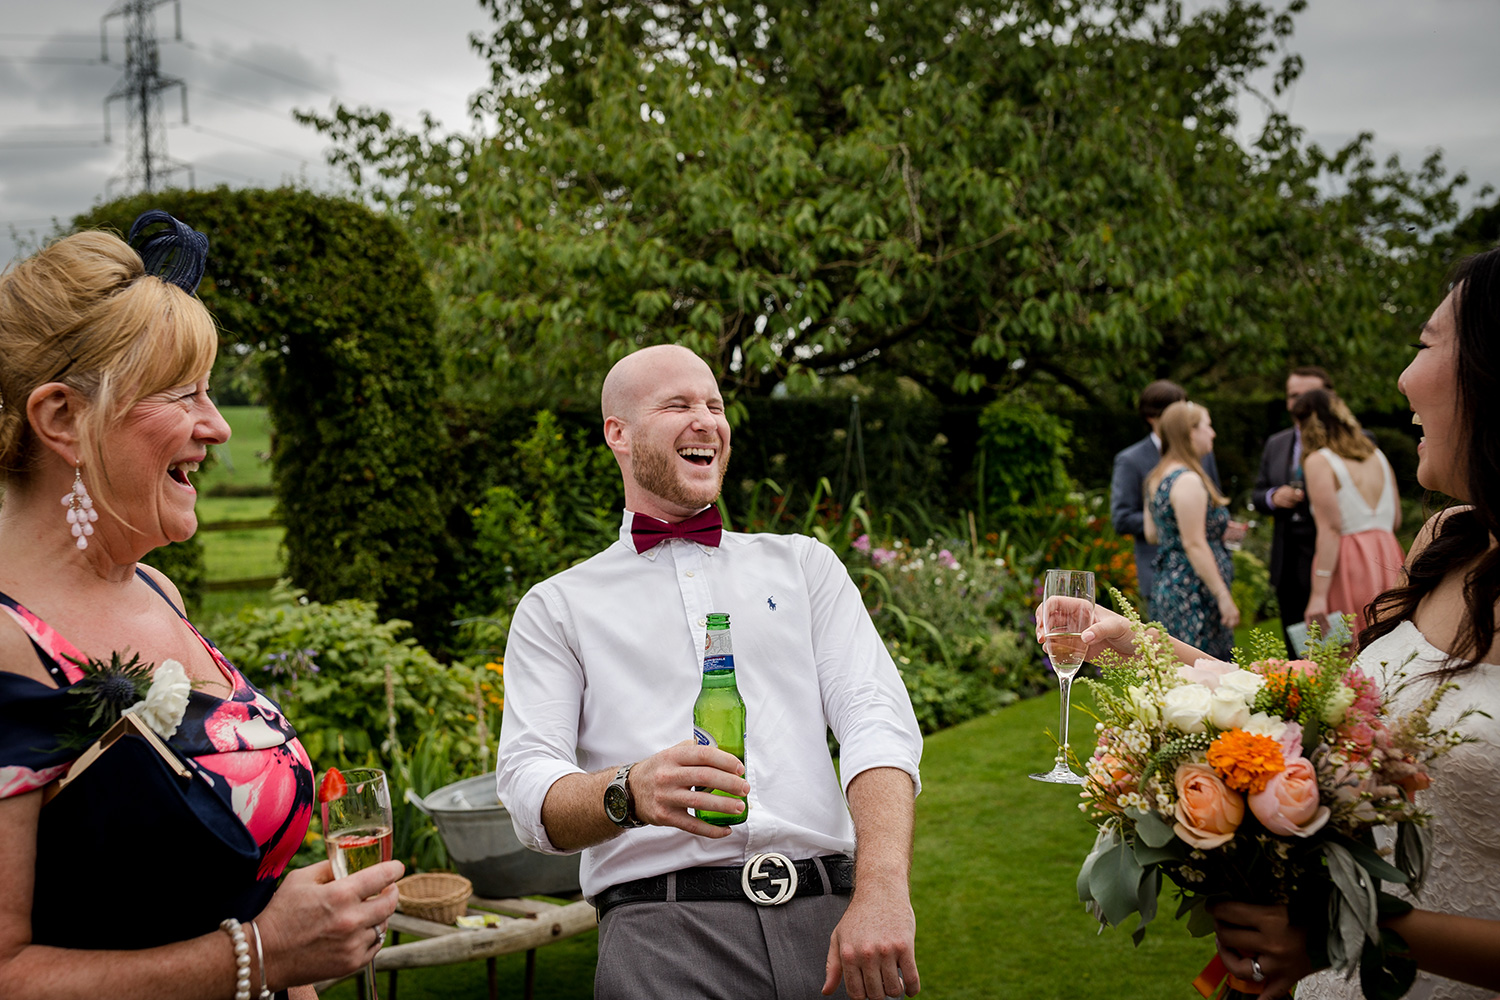 Wedding guests at a Hilltop Country House Wedding